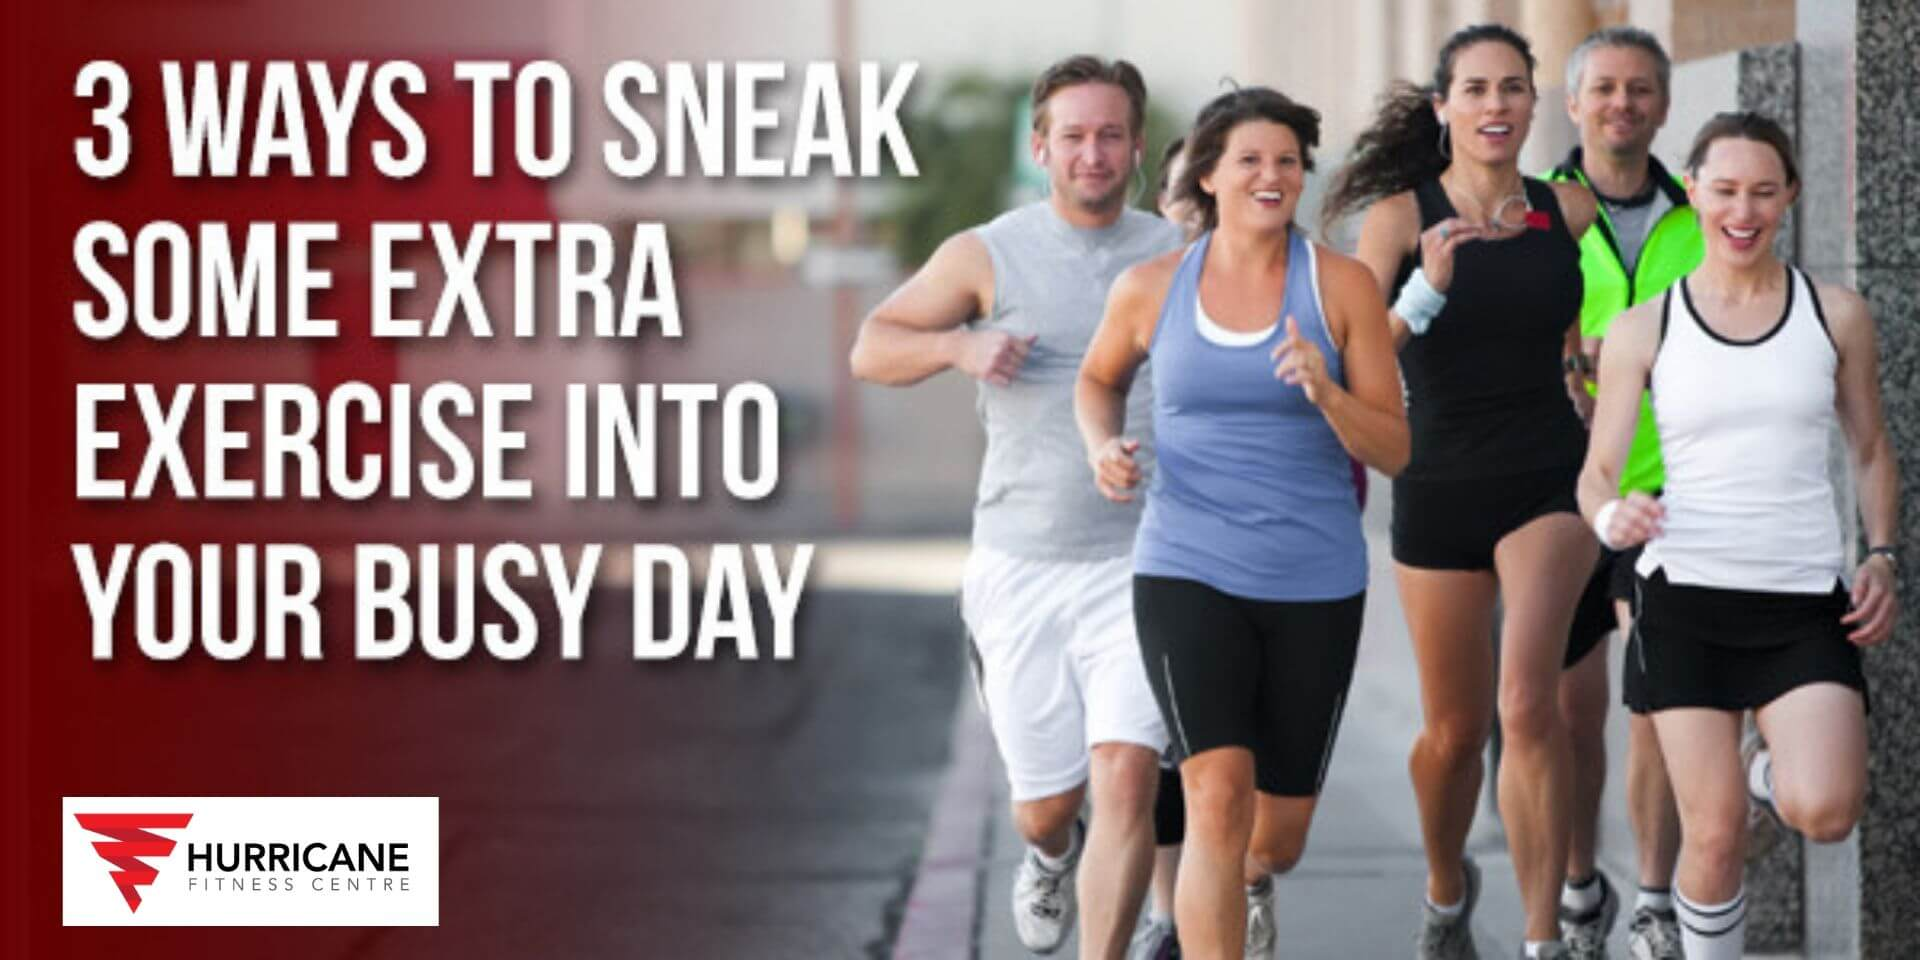 3 ways to sneak some extra exercise into your busy day